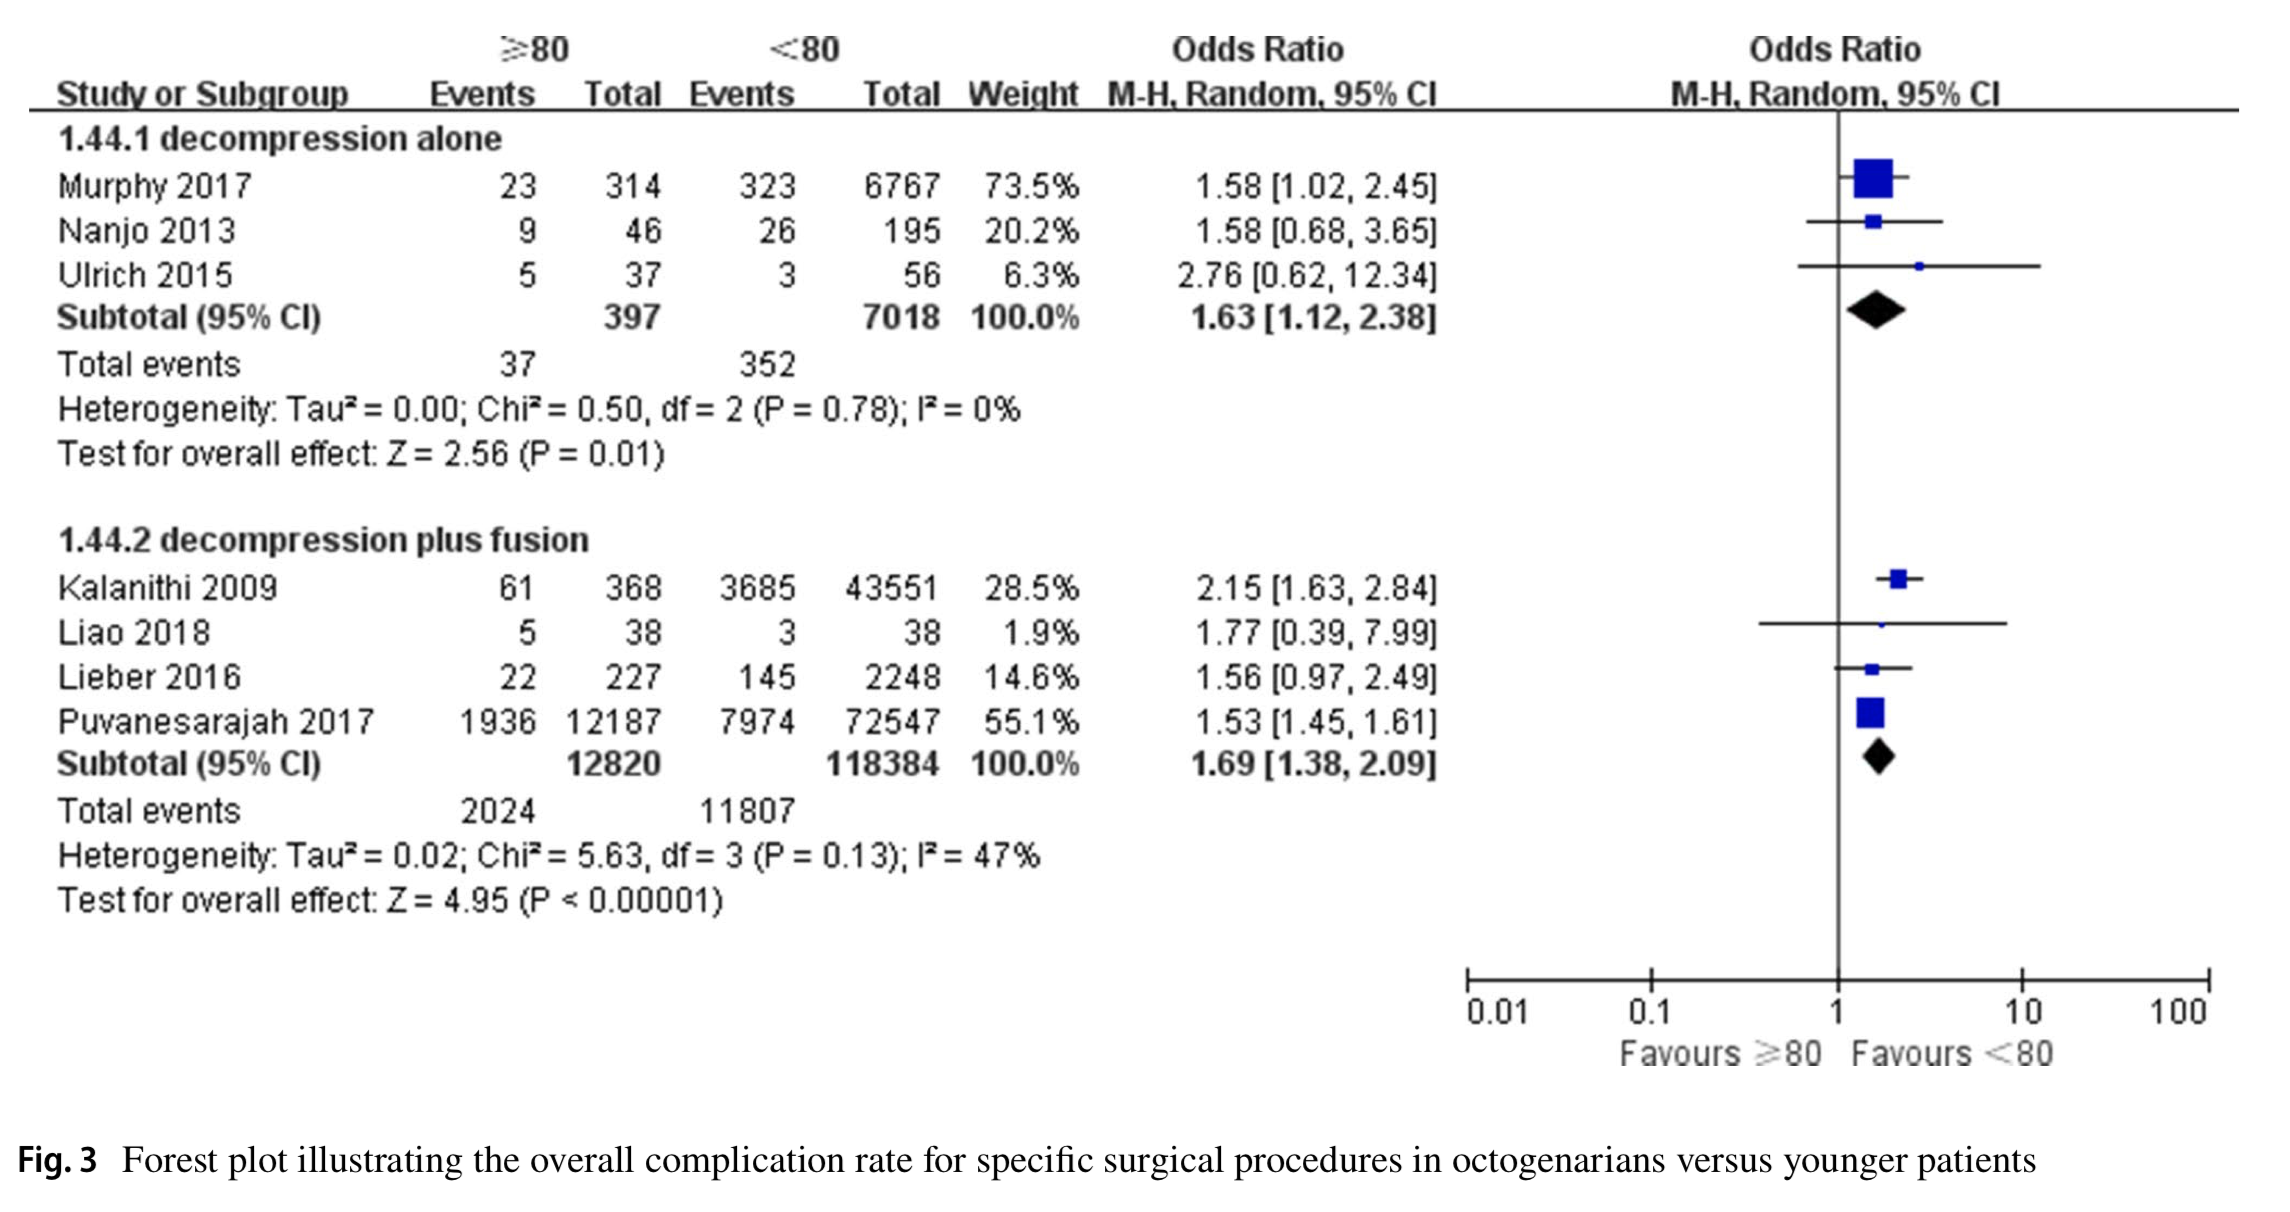 Clinical outcomes of lumbar spinal surgery in patients 80 years or older with lumbar stenosis or spondylolisthesis: a systematic review and meta-analysis